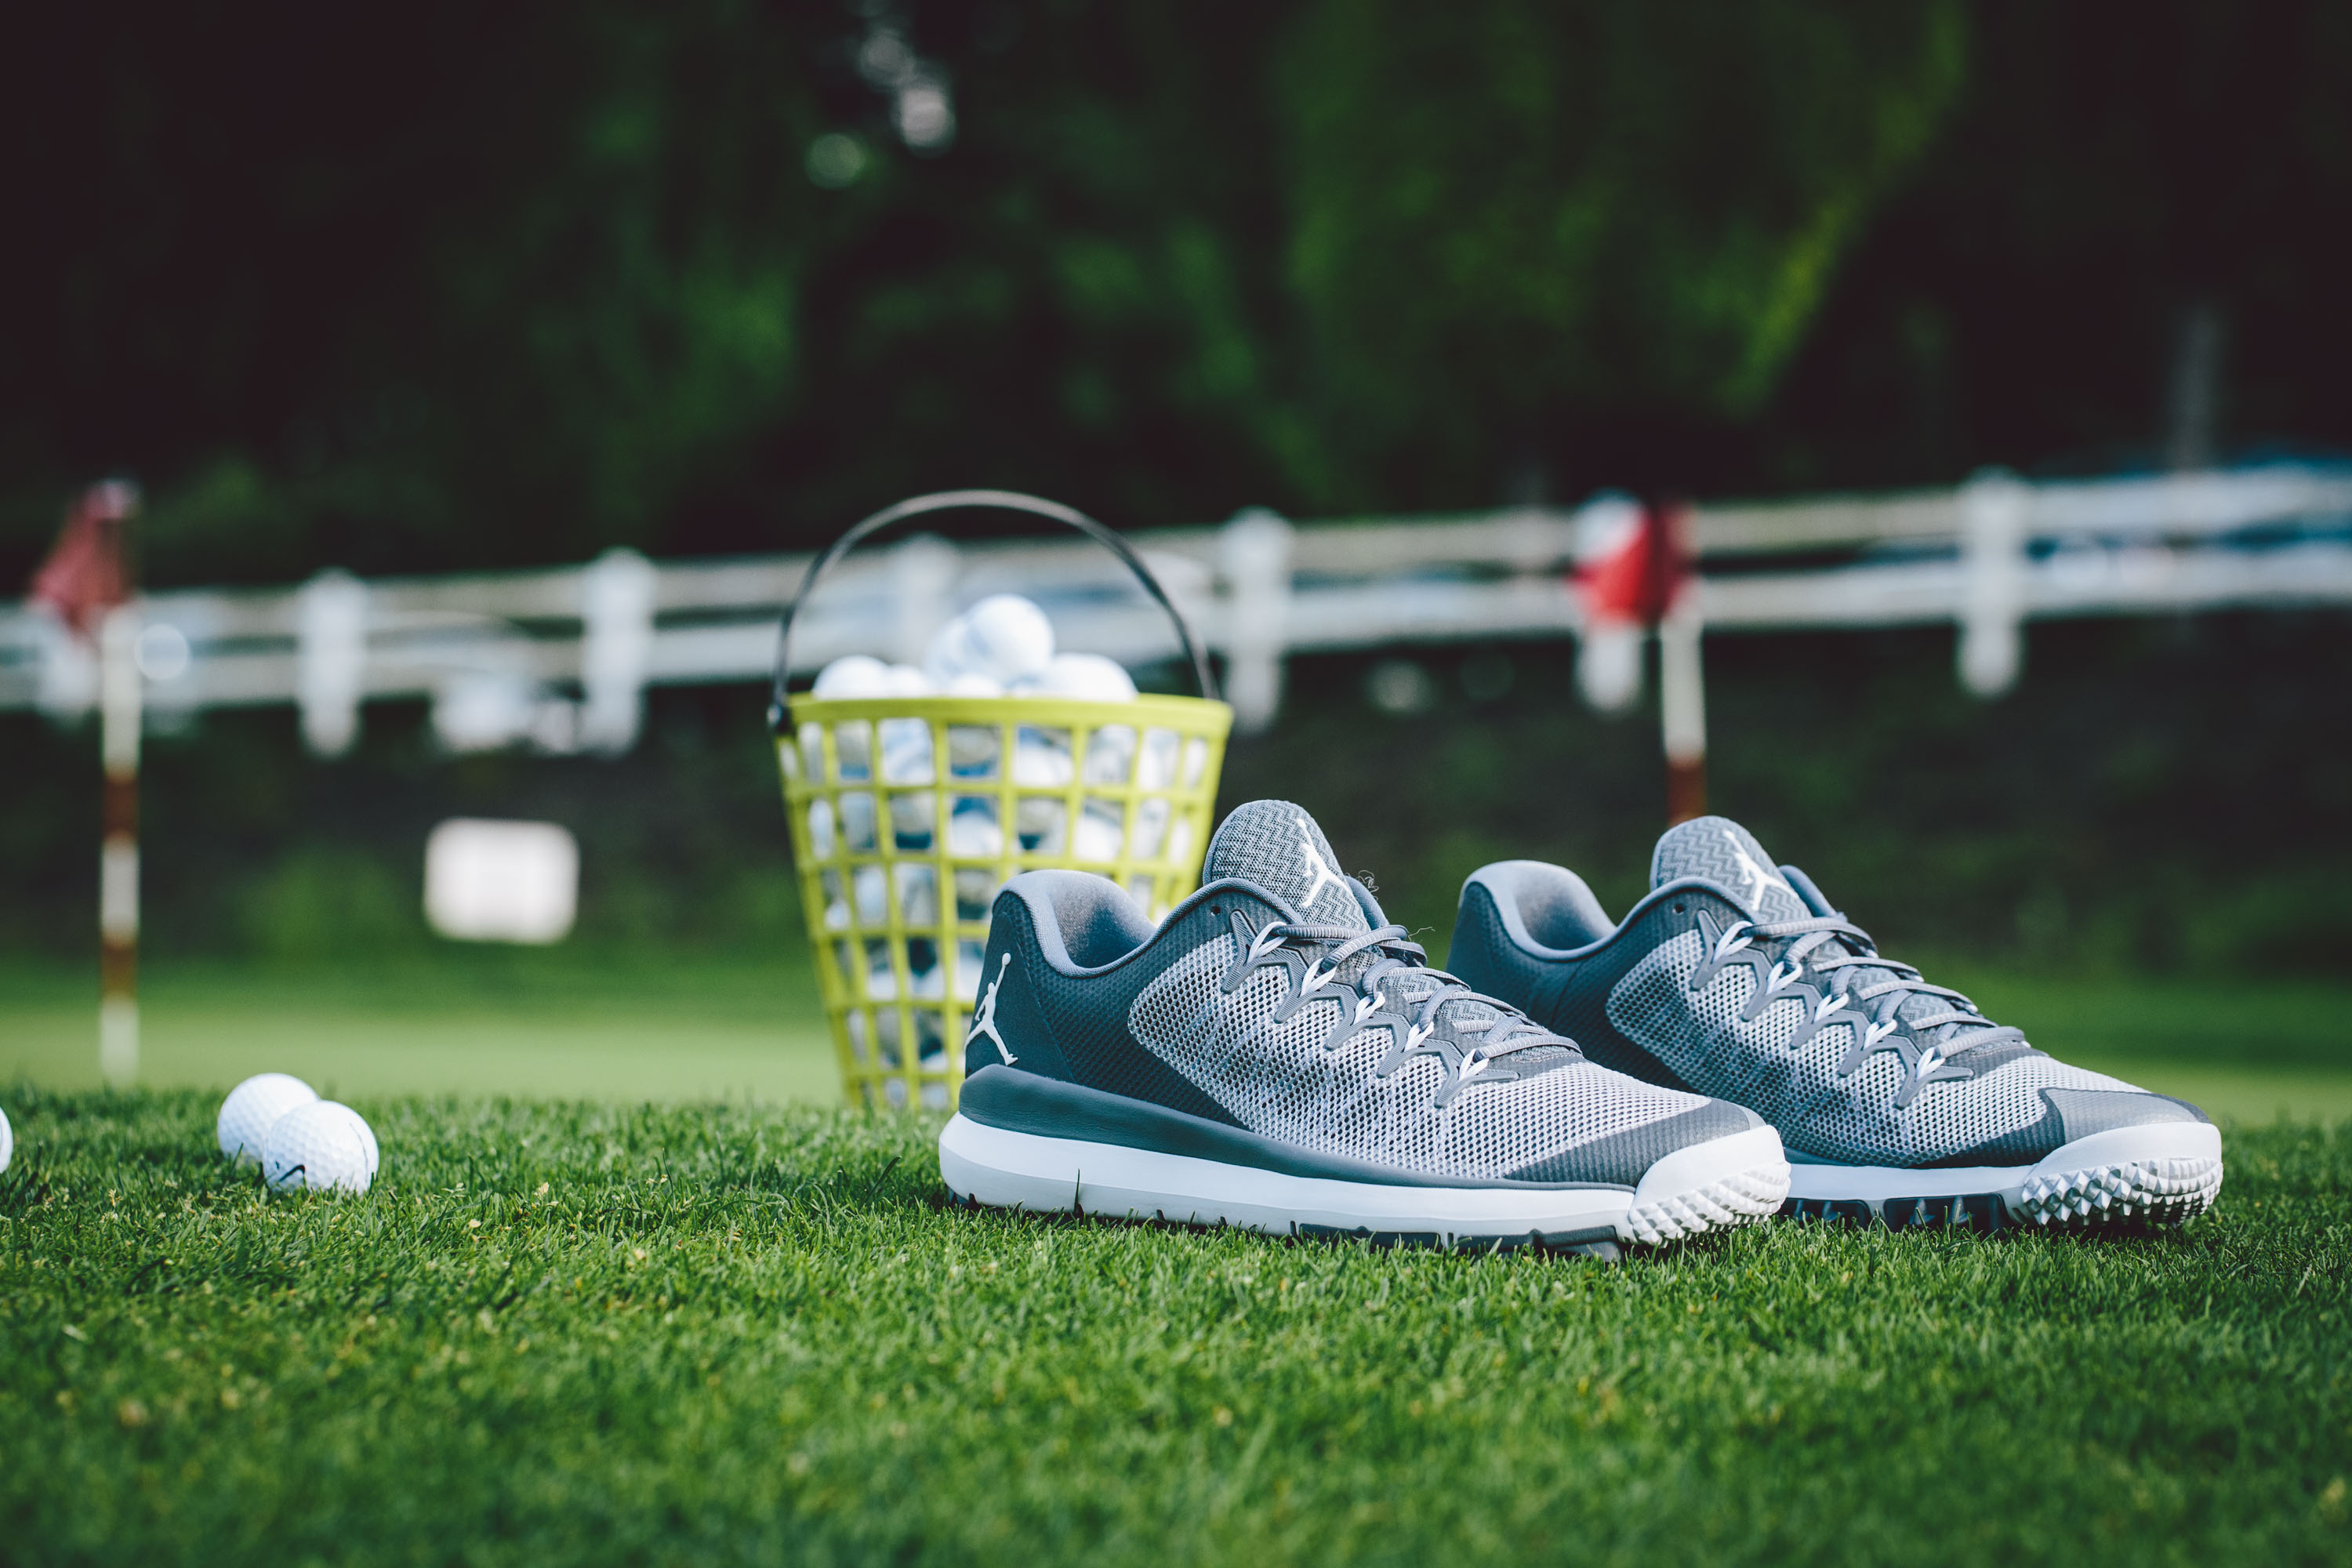 There was plenty of fancy footwear spotted at last weekend's Michael Jordan Celebrity Invitational Golf Tournament, included in the batch the latest look